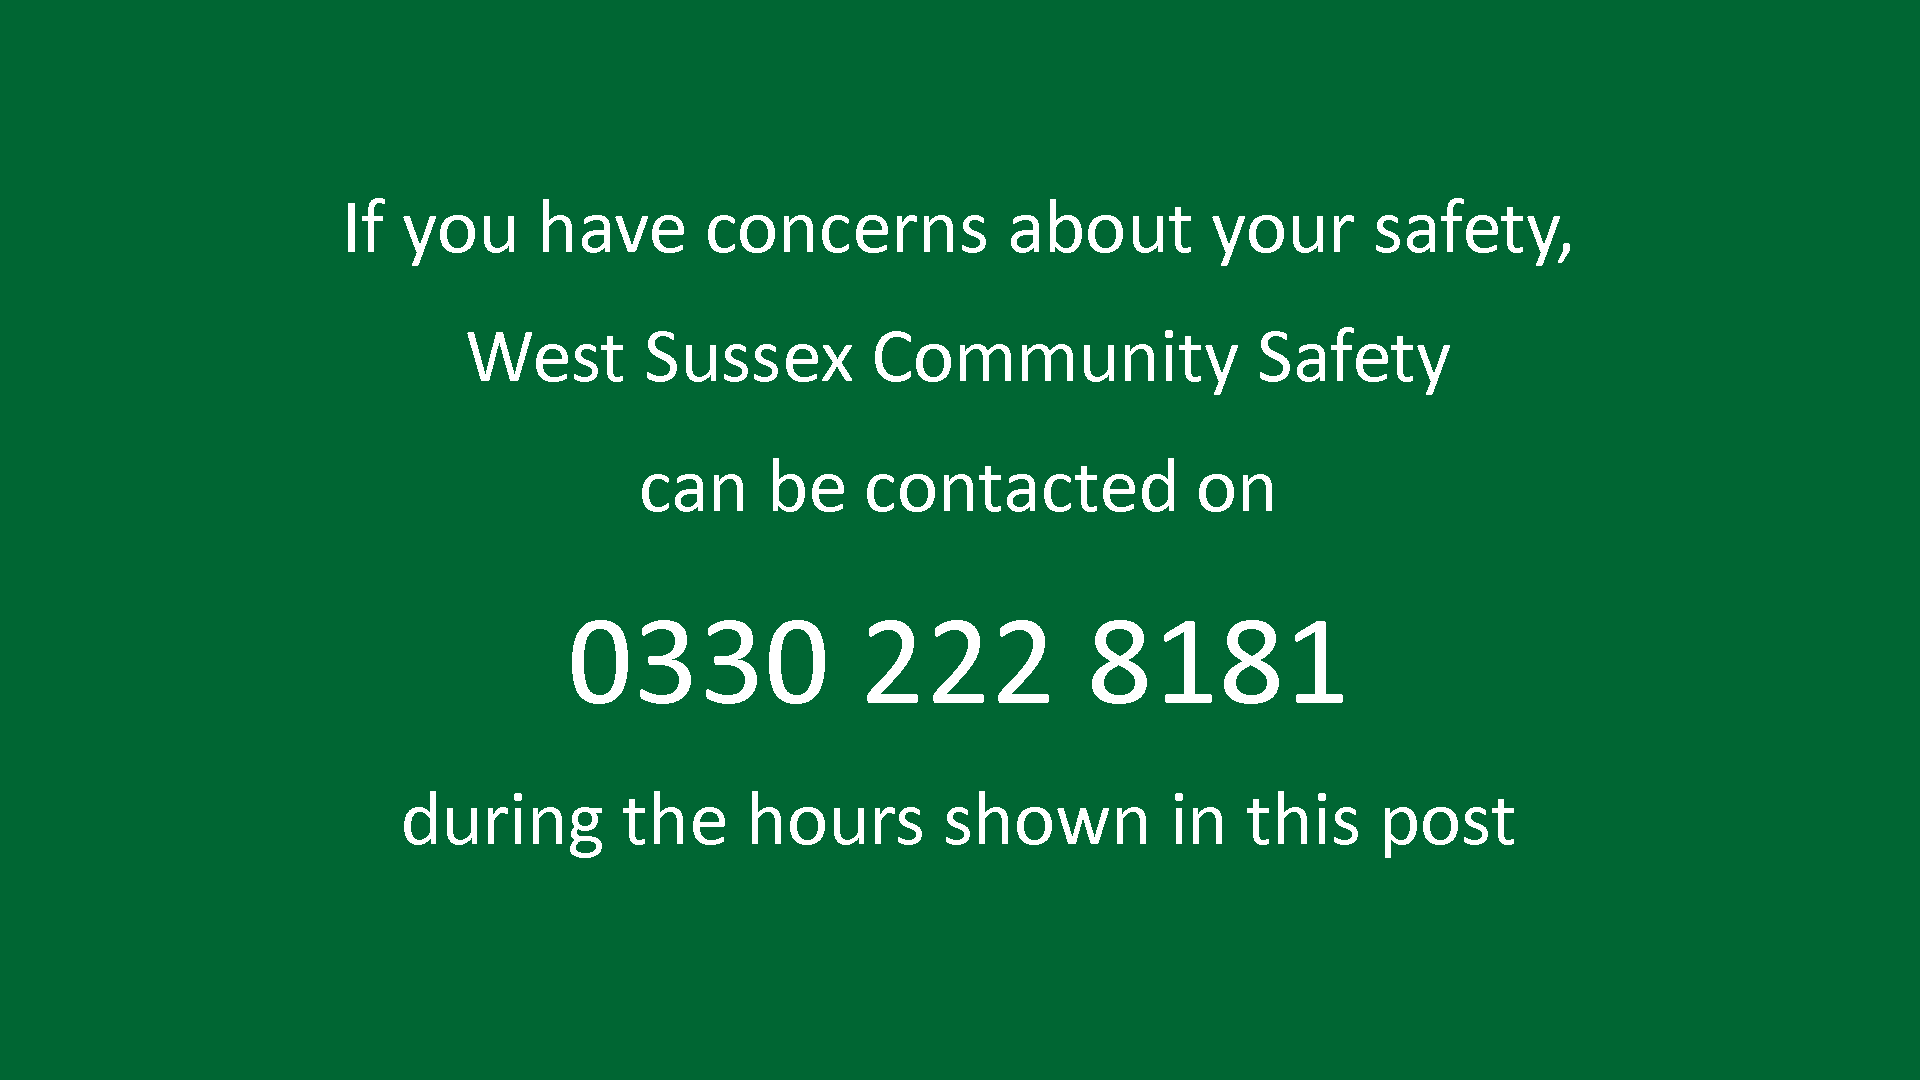 West Sussex Community Safety